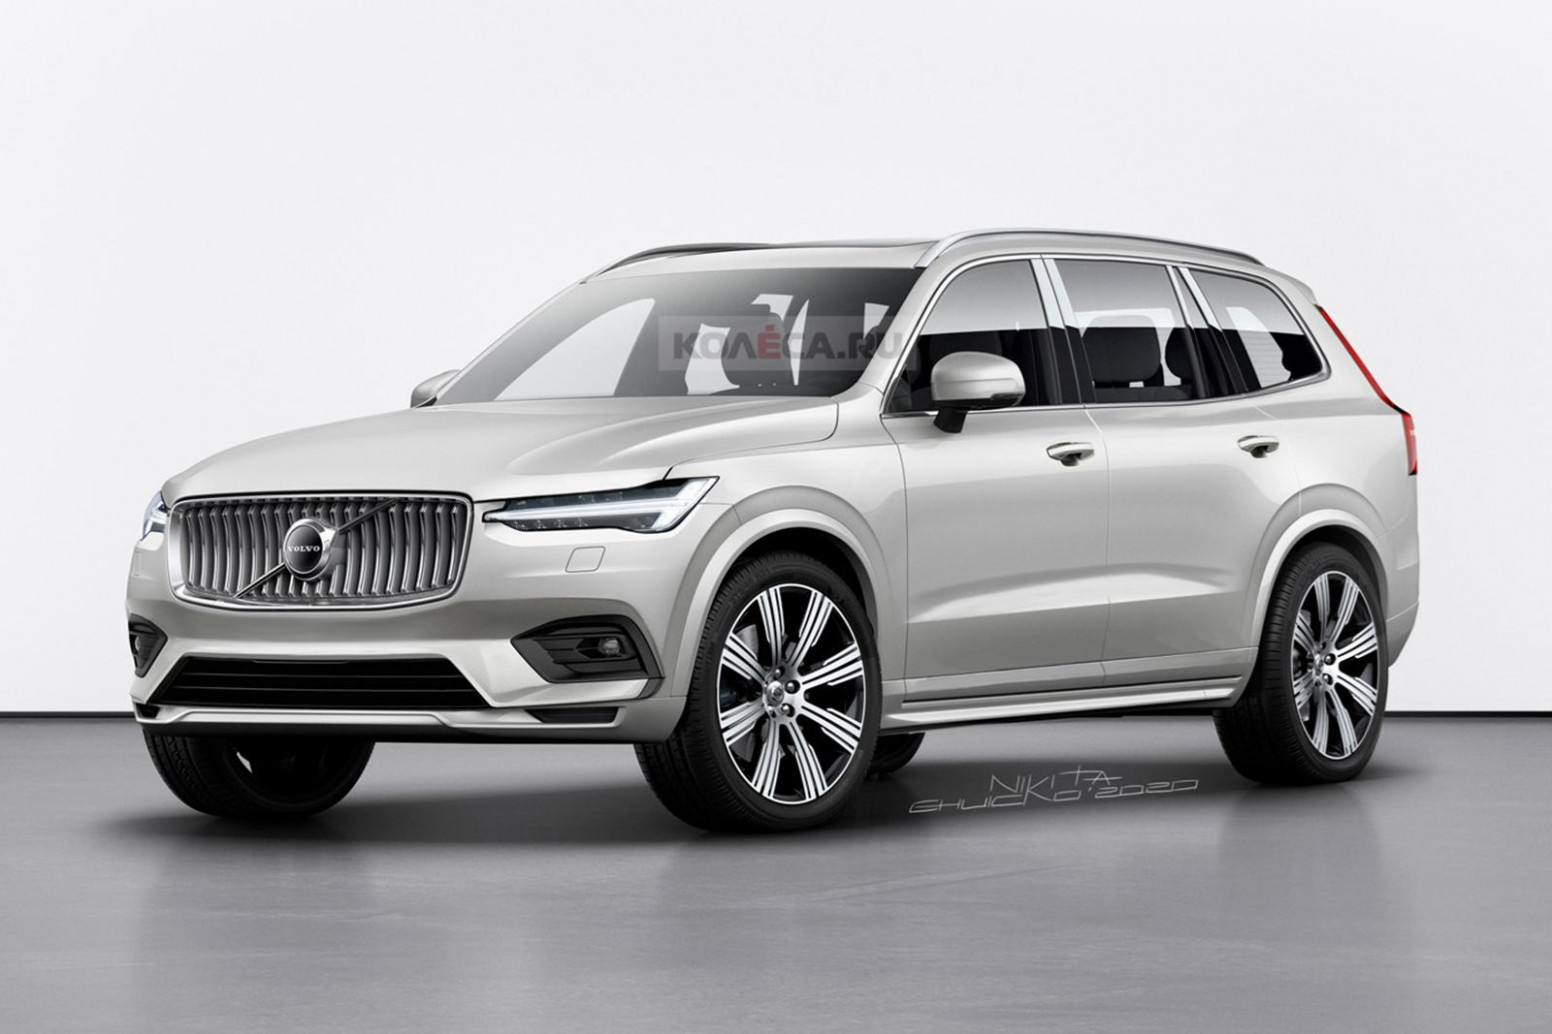 Redesign and Concept 2022 Gle Vs Volvo Xc90